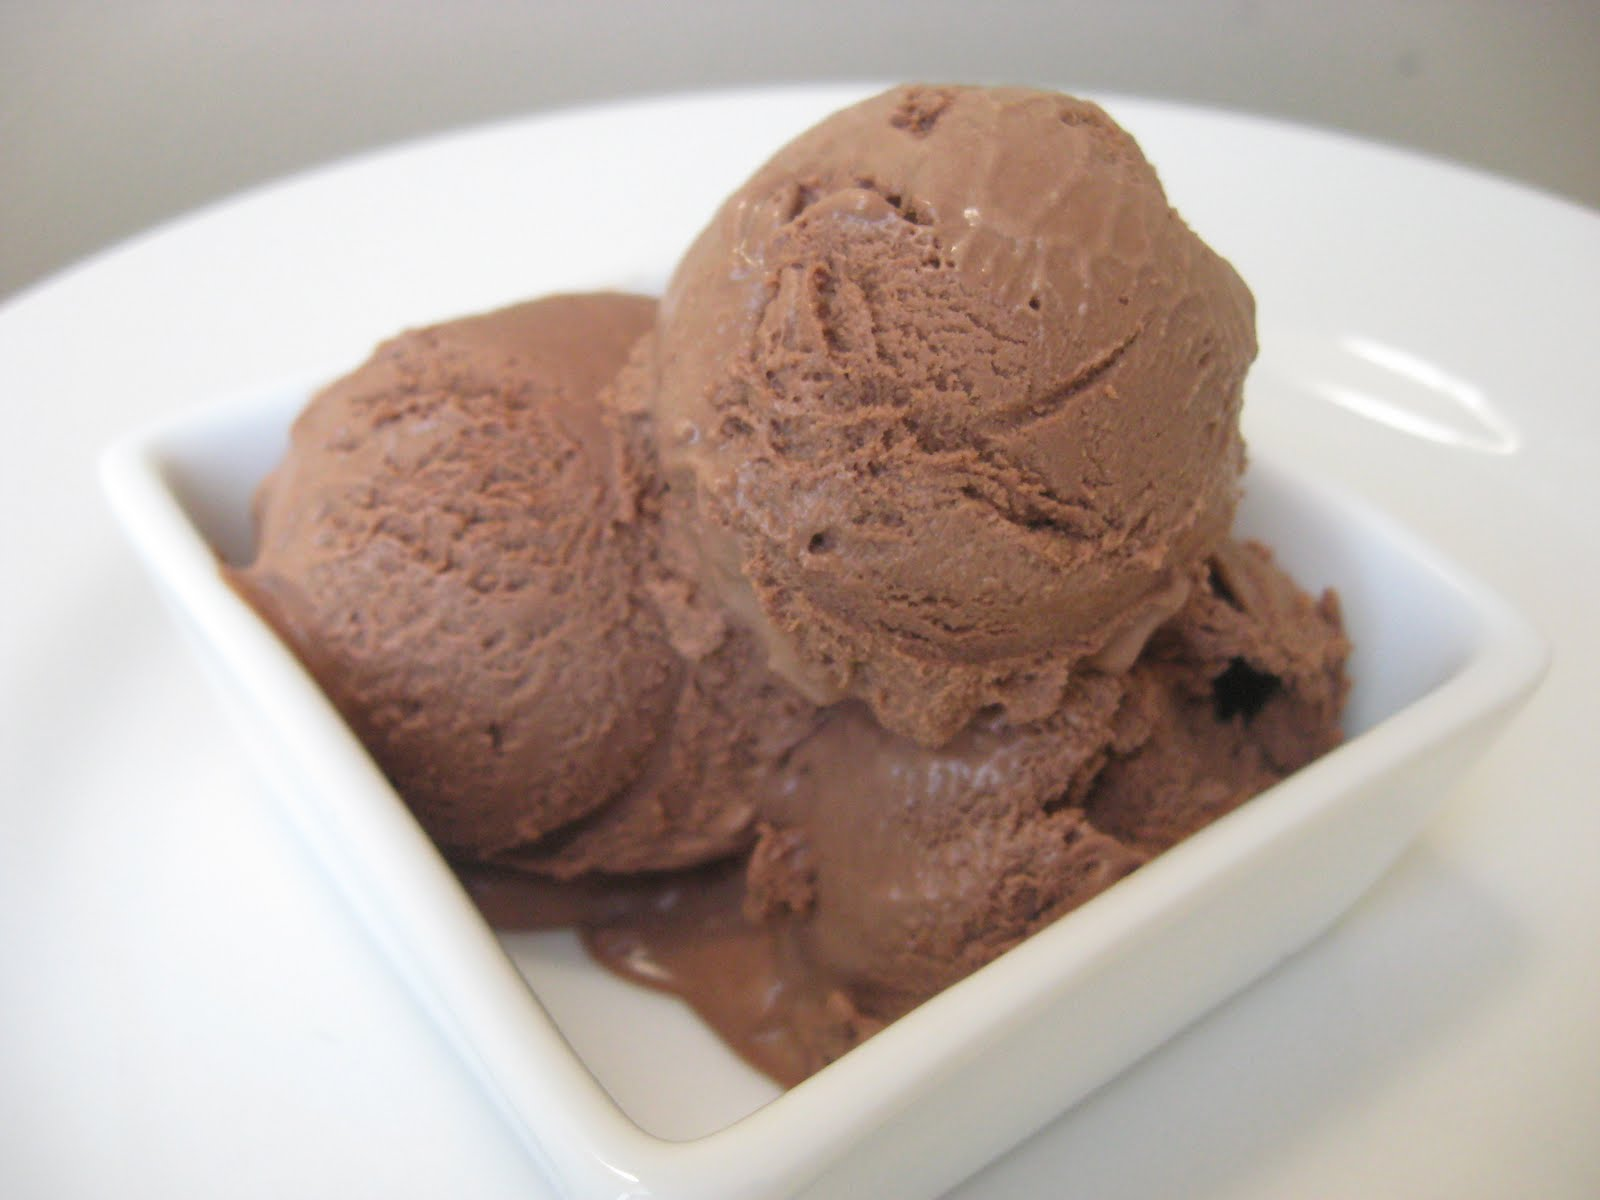 ... ice cream chocolate egg cream chocolate ice cream chocolate ice cream